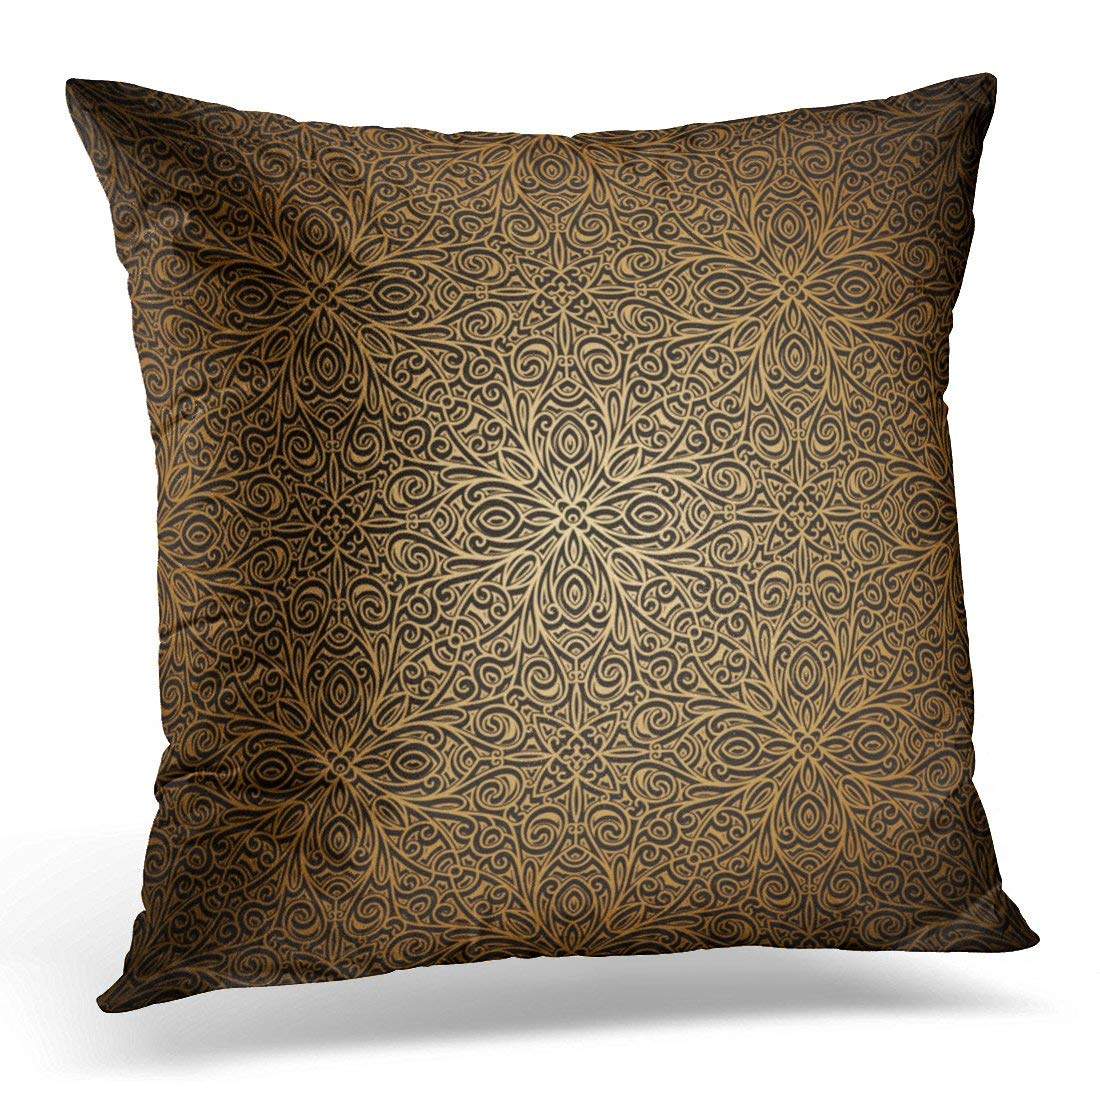 USART Swirly Black Arabesque Vintage Gold Filigree Yellow Renaissance Rococo Pillow Case Cushion Cover 20x20 Inches